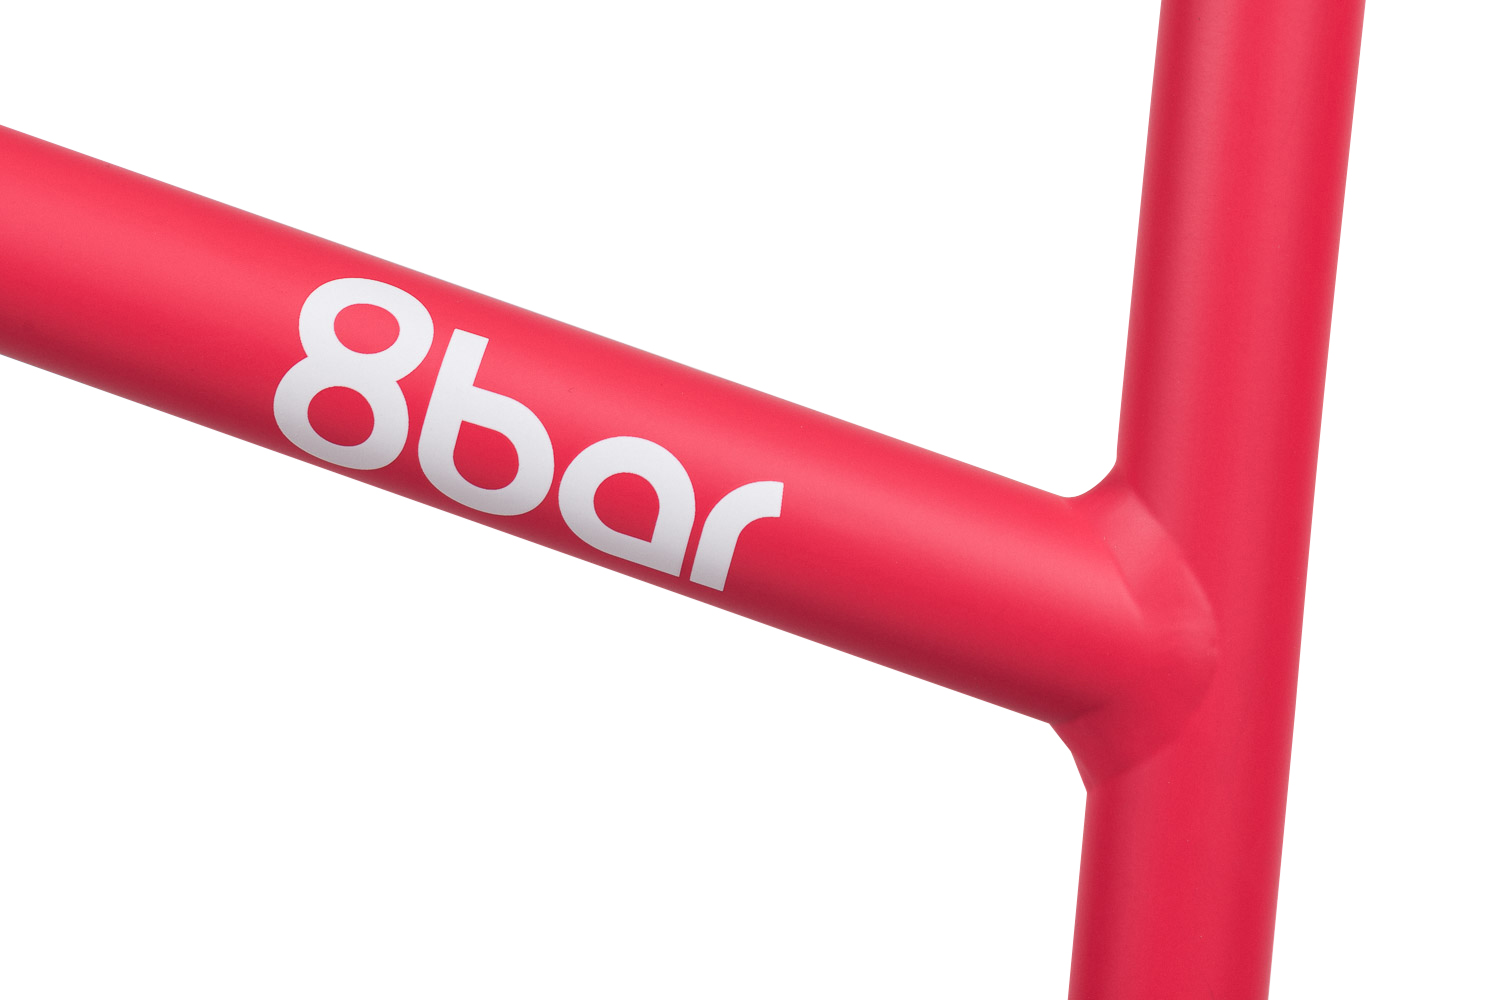 8bar fhain v2 women candy pink fixed gear fixie 005 - 8bar FHAIN v2 WMN - Especially designed for women